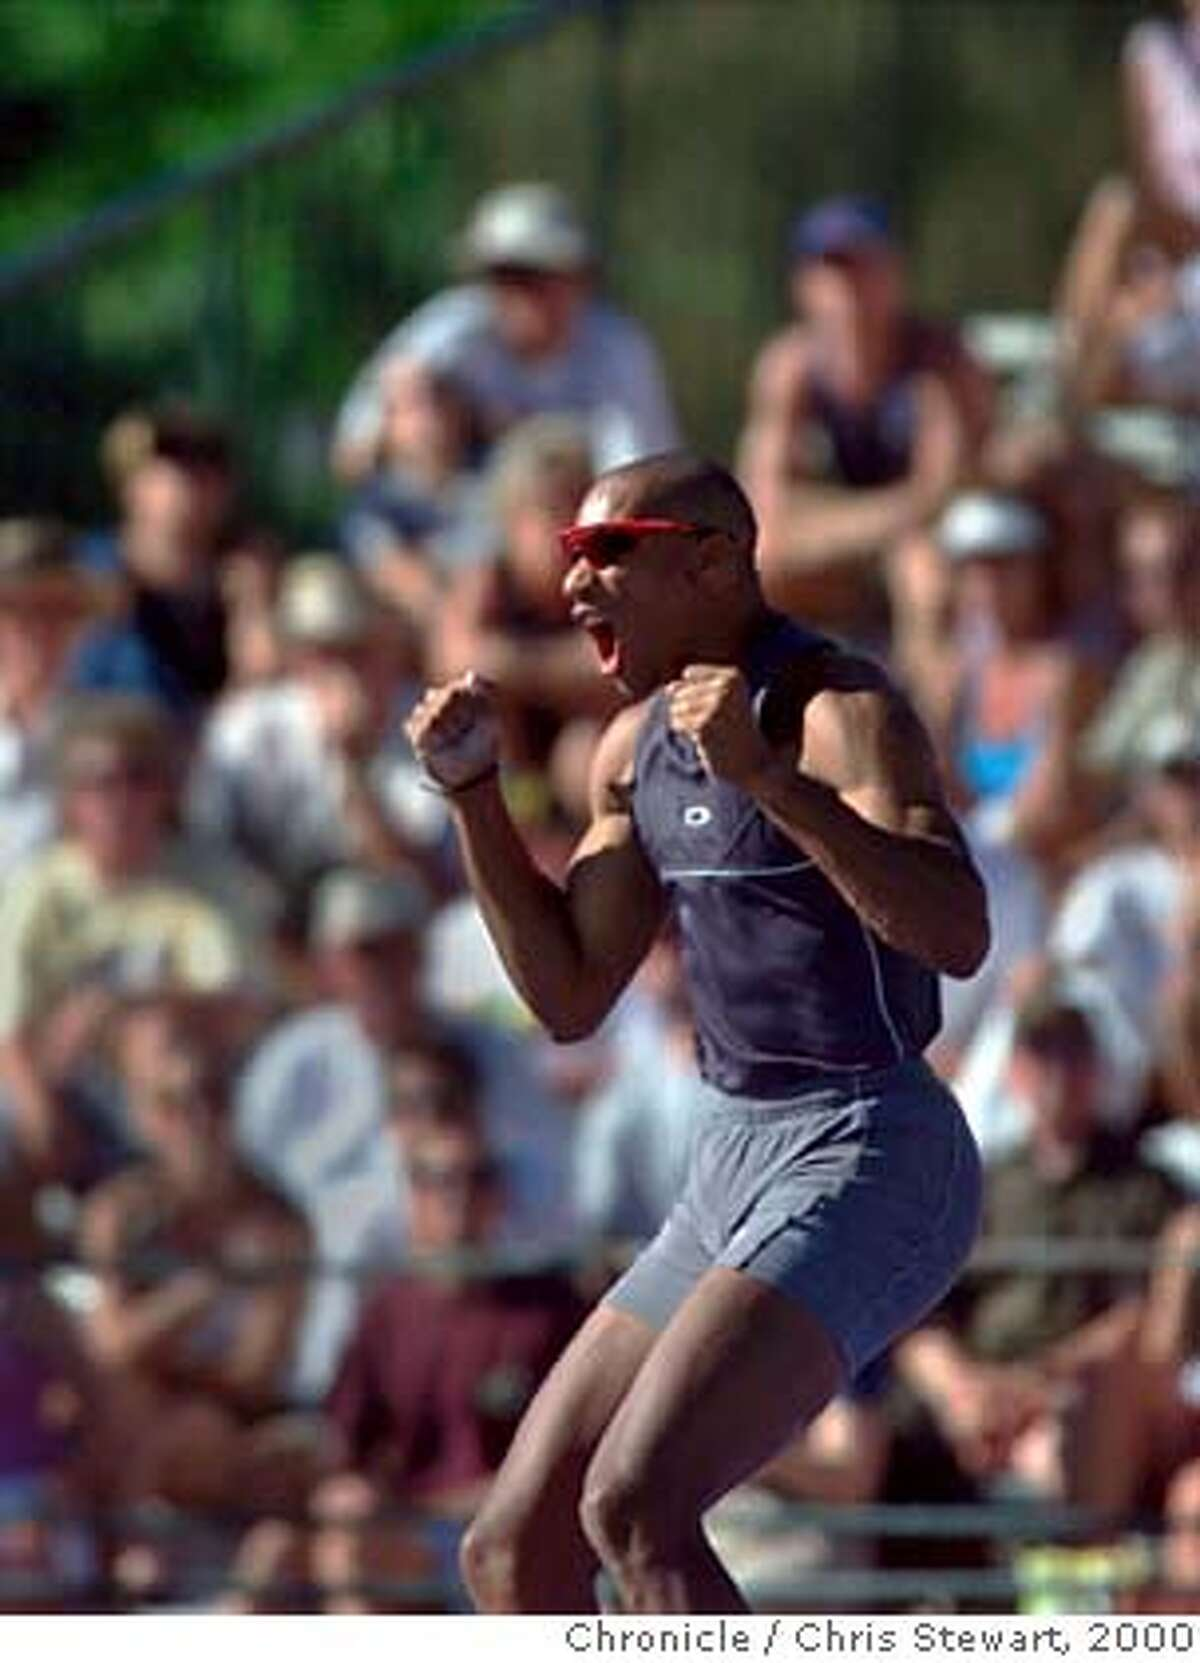 TRACK-HUFFINSYELL-21JUL00-SP-CS Decathlon leader Chris Huffins shouts at missing on his final jump at 4.70 meters in the men's decathlon pole vault at the 2000 U.S. Olympic track and field trials at Cal State Sacramento. Huffins finished in seventh place and holds a slim lead over Tom Pappas, who placed second in the pole vault. Only two events remain. BY CHRIS STEWART/THE CHRONICLE